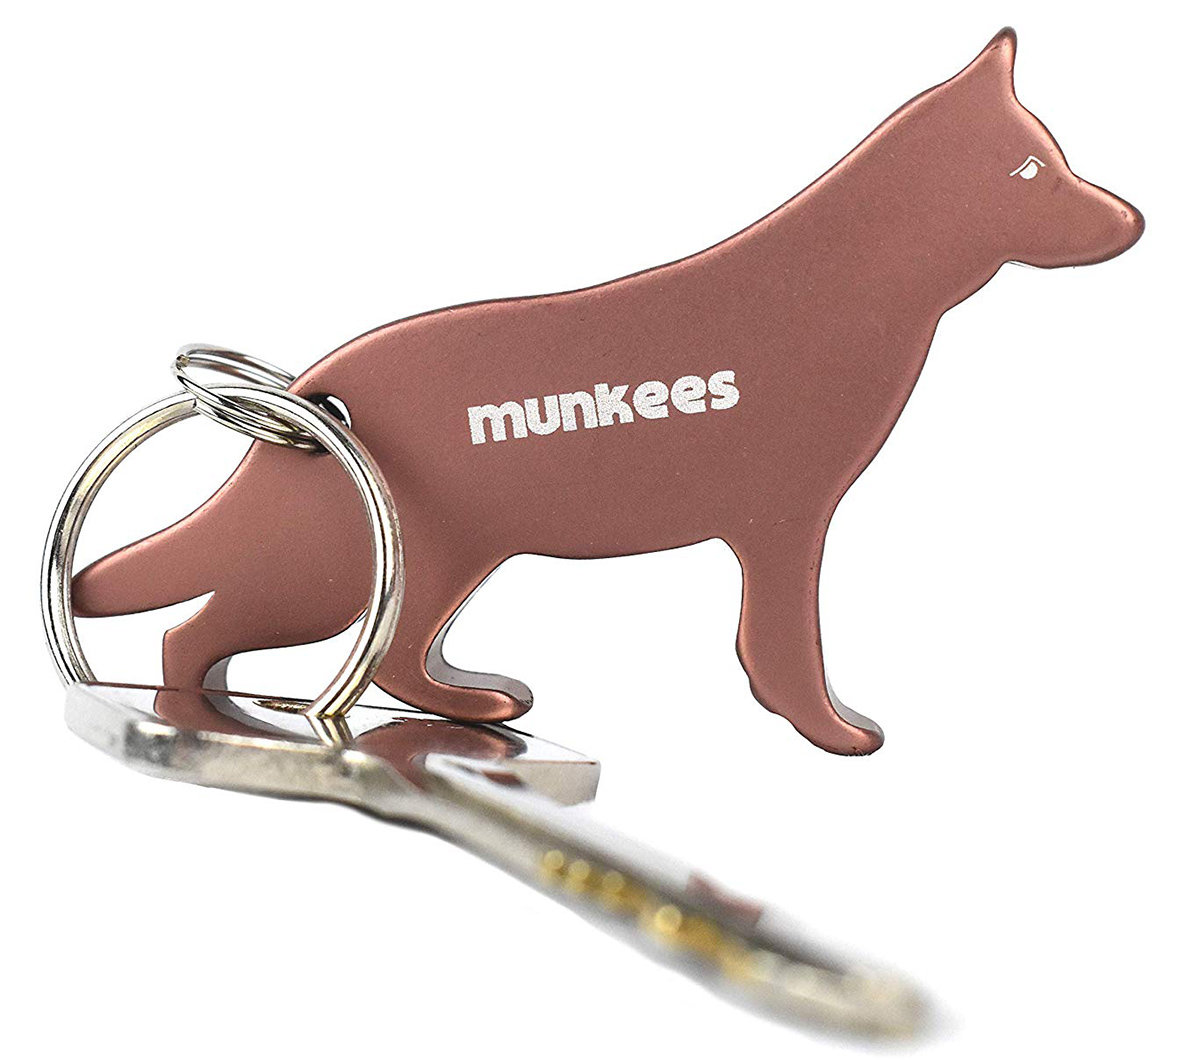 Брелок-открывалка Munkees 3454 GERMAN SHEPHERD black 1 3454 GERMAN SHEPHERD bronze 3454